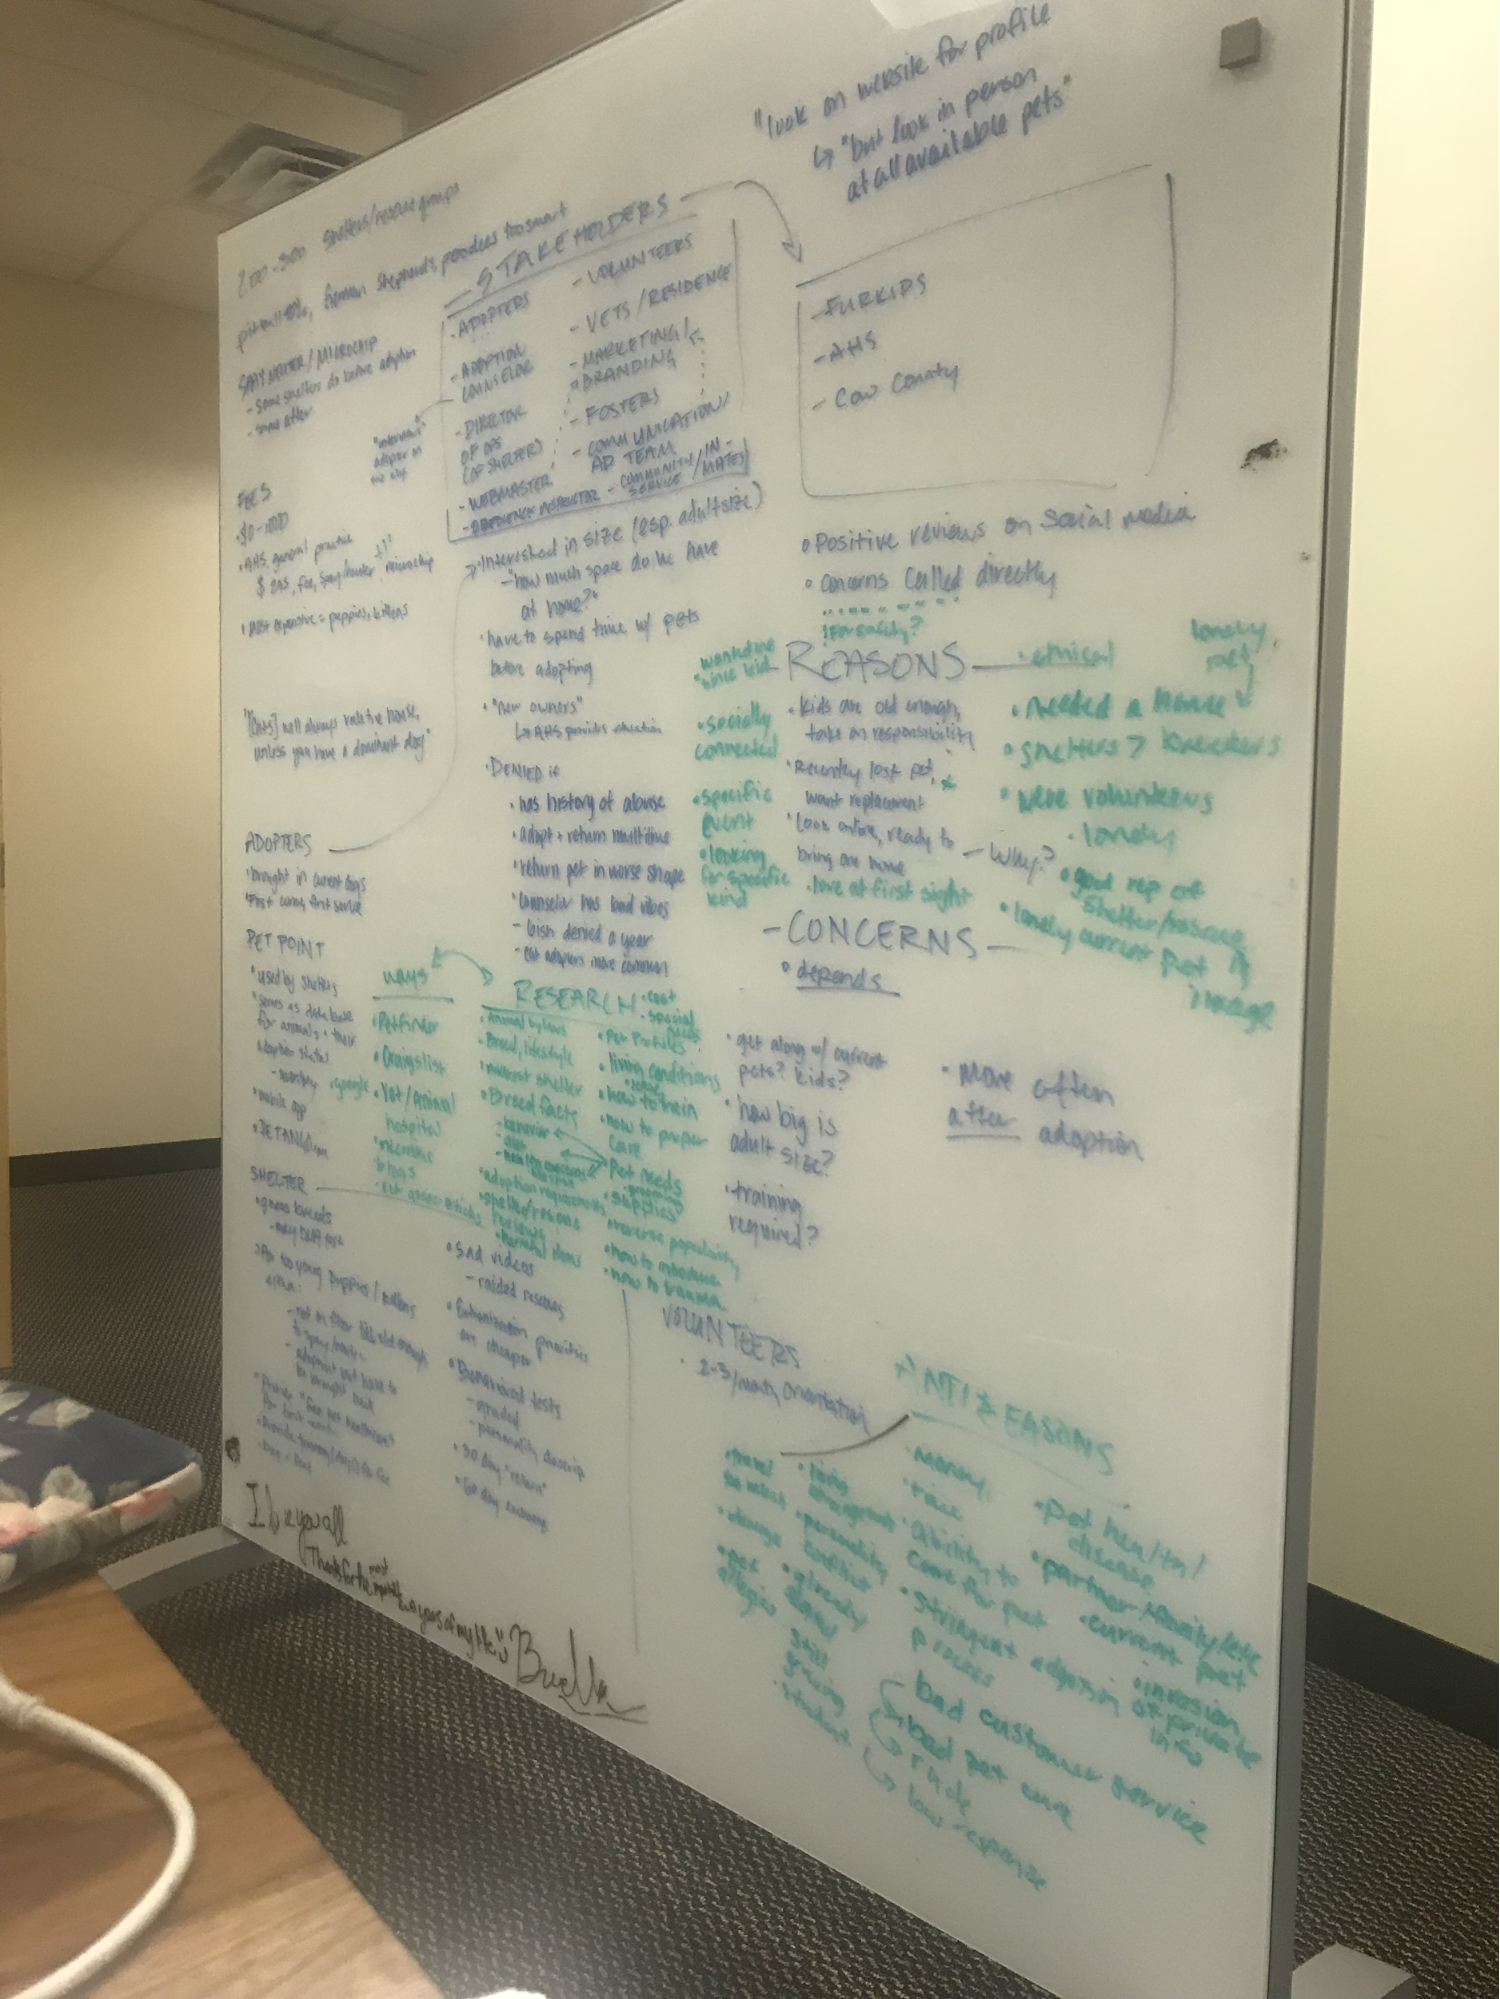 Narrowing down our data to distill our user groups' concerns